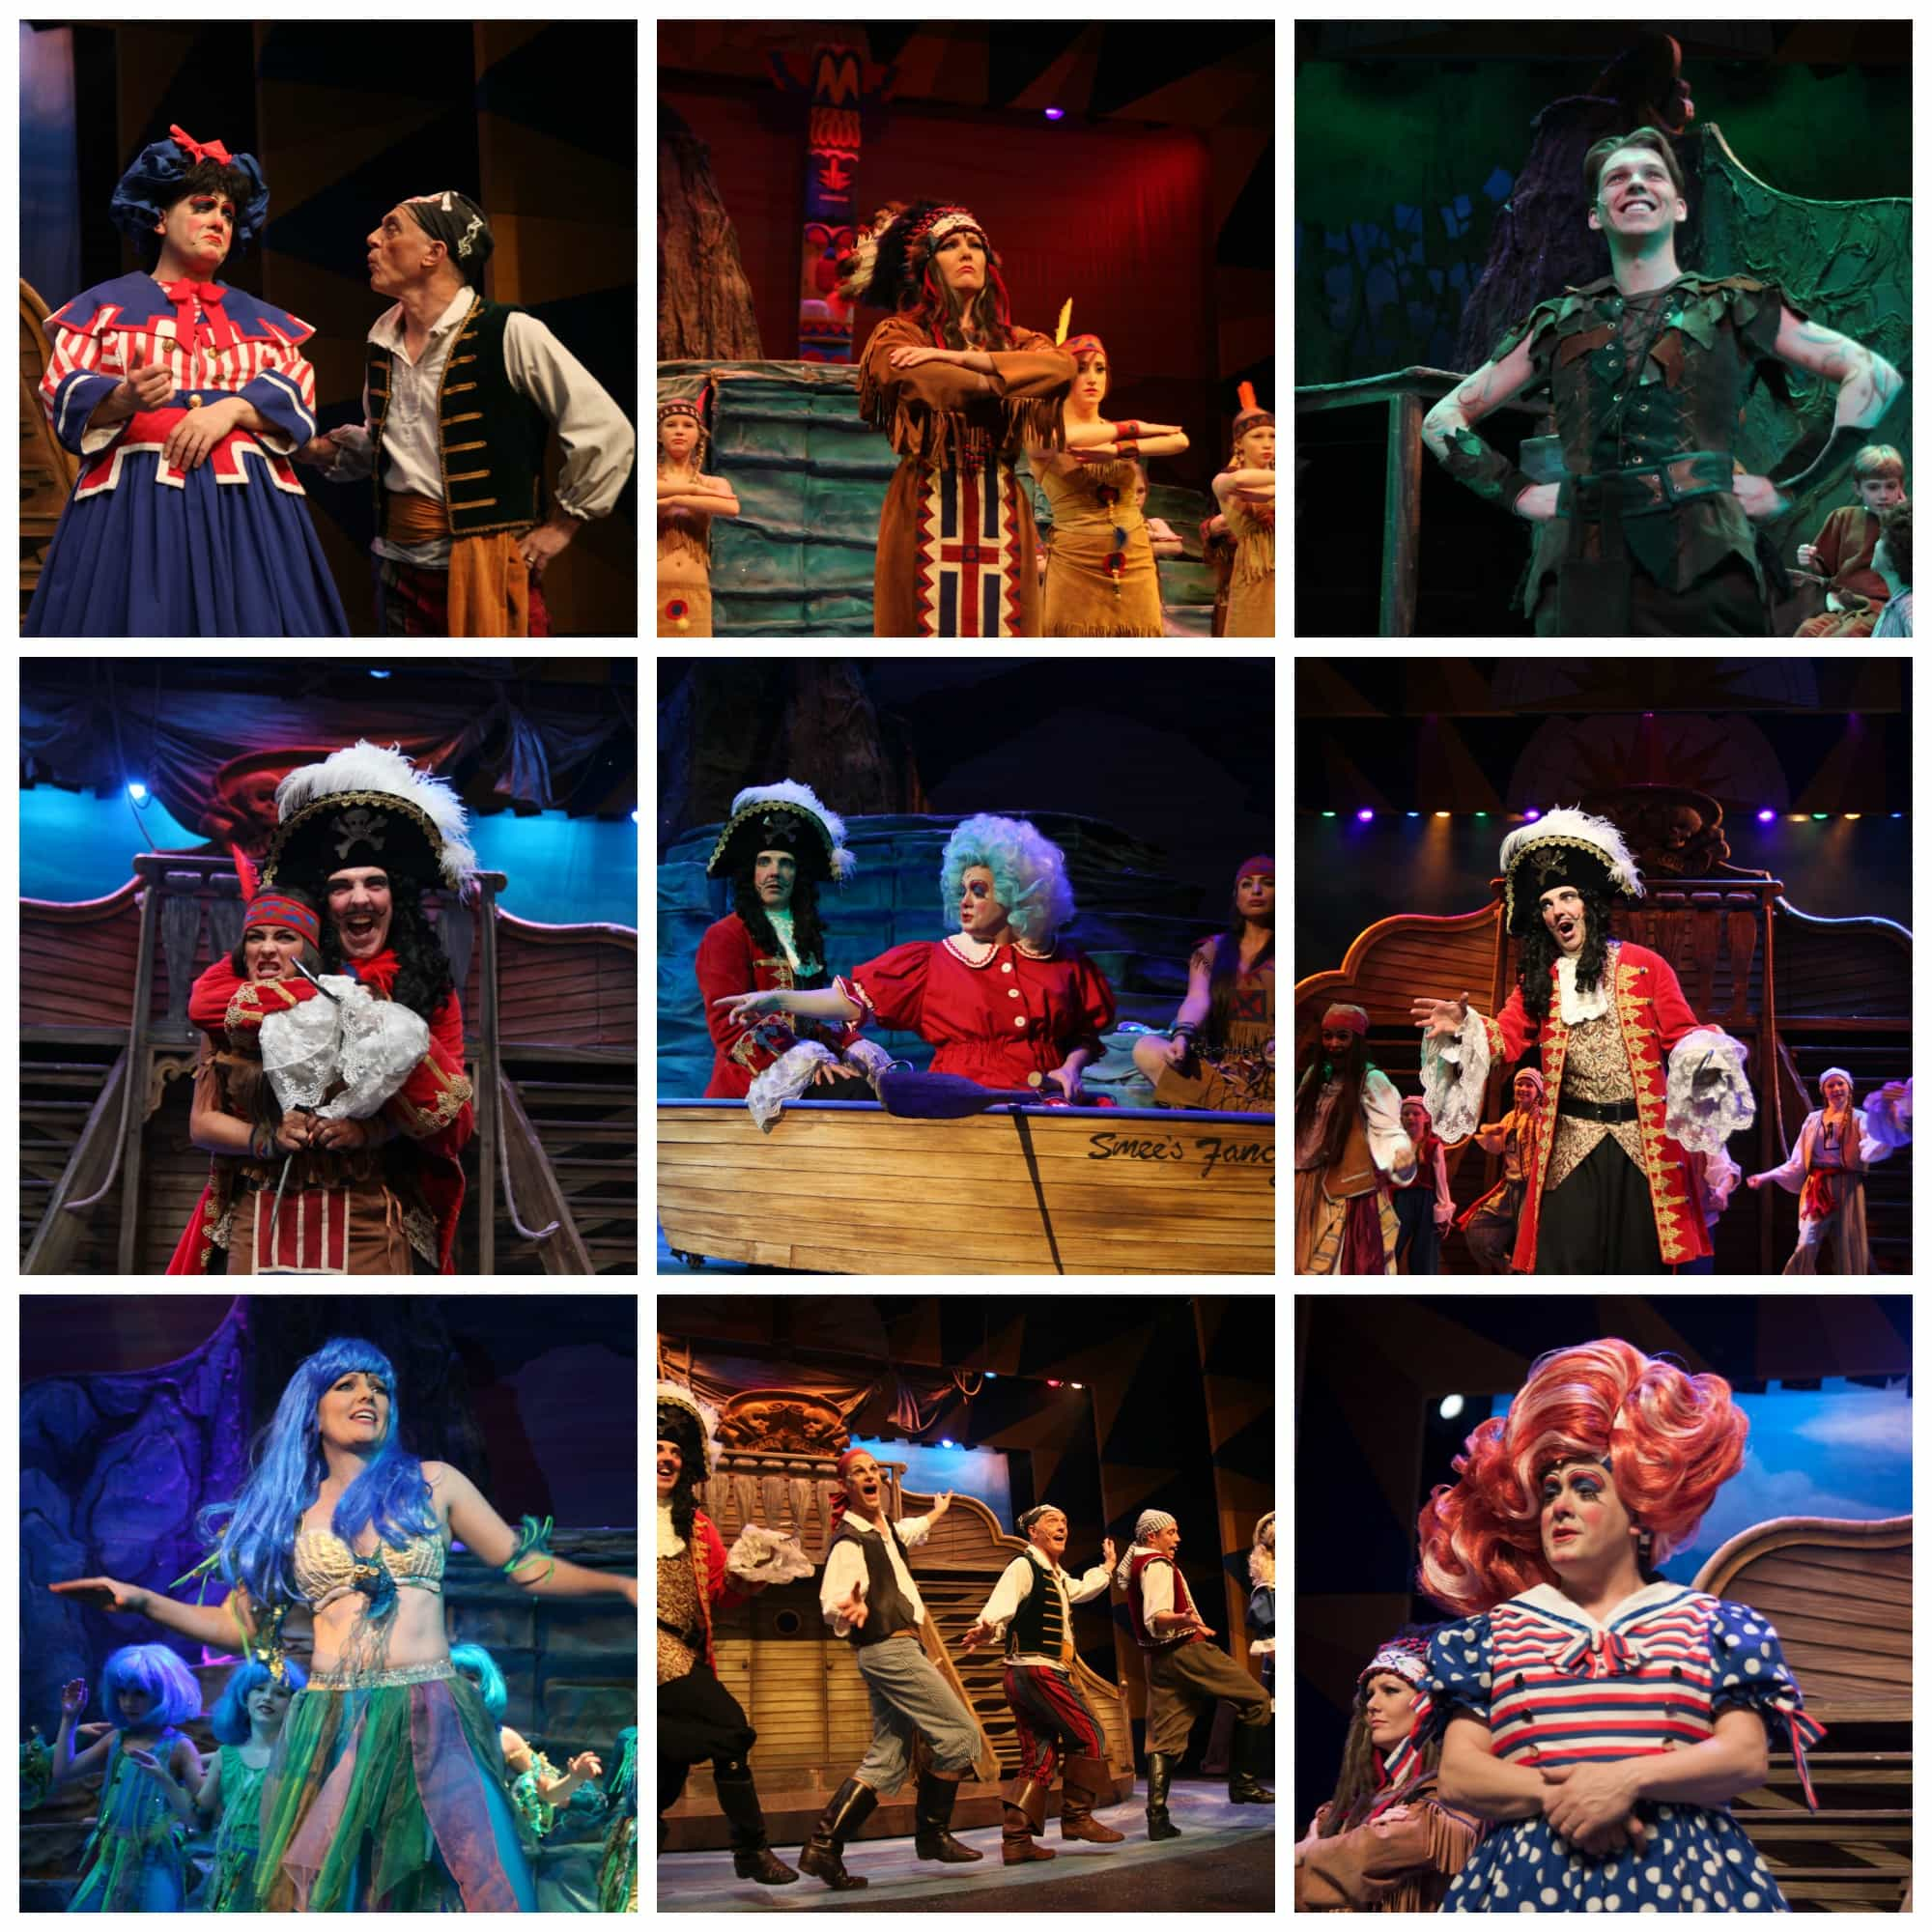 Peter Pan Theatre Severn